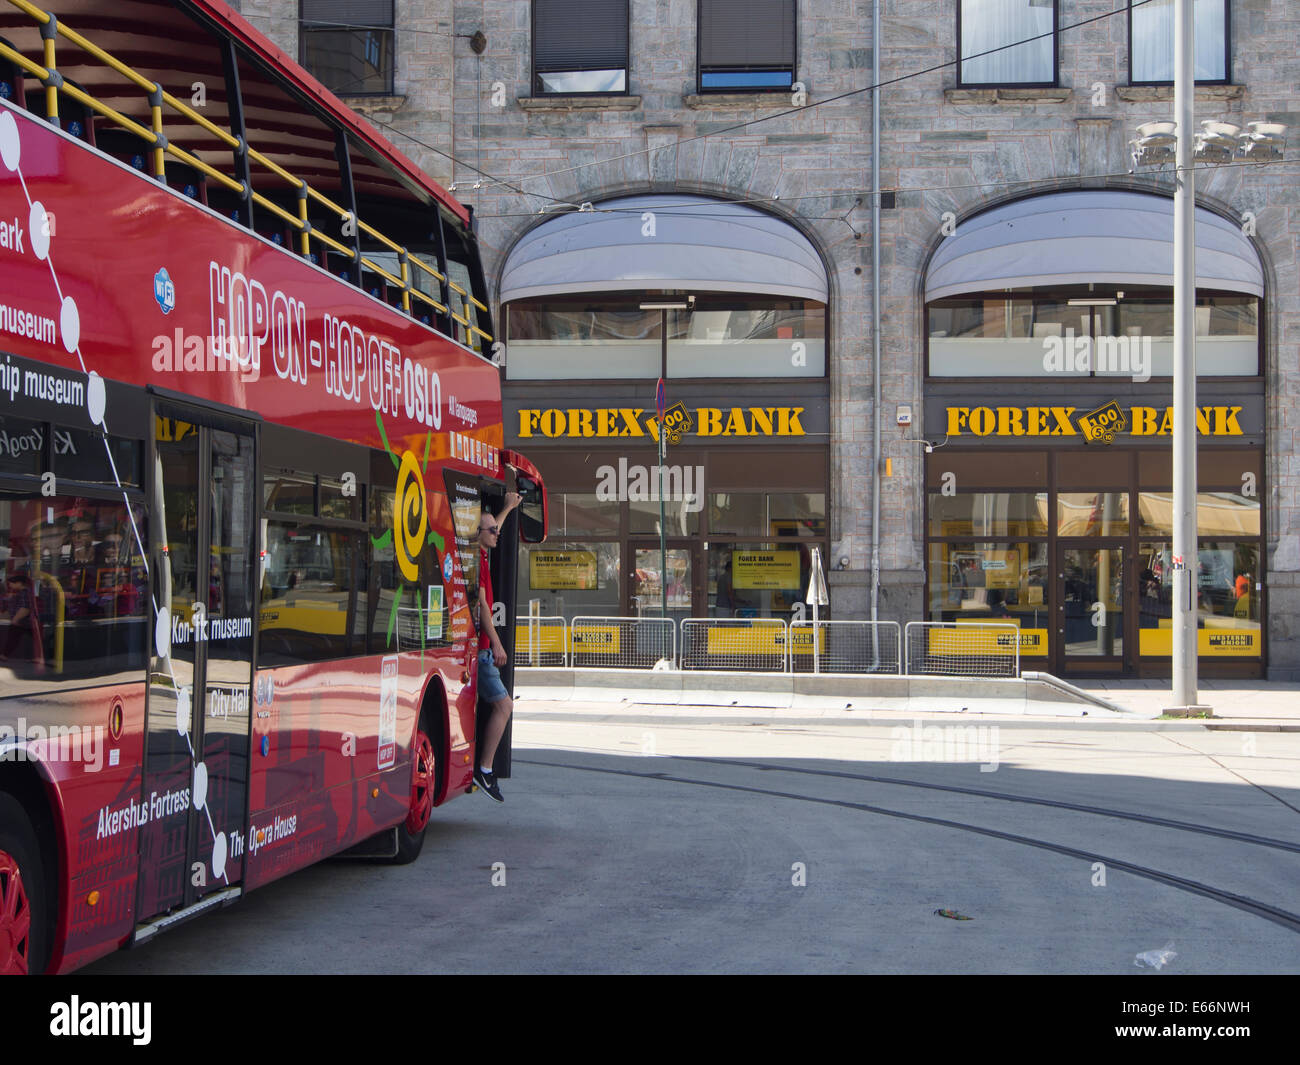 Forex bank and Hop on - Hop off sightseeing bus. Services for tourists in Oslo Norway as well as many other cities - Stock Image